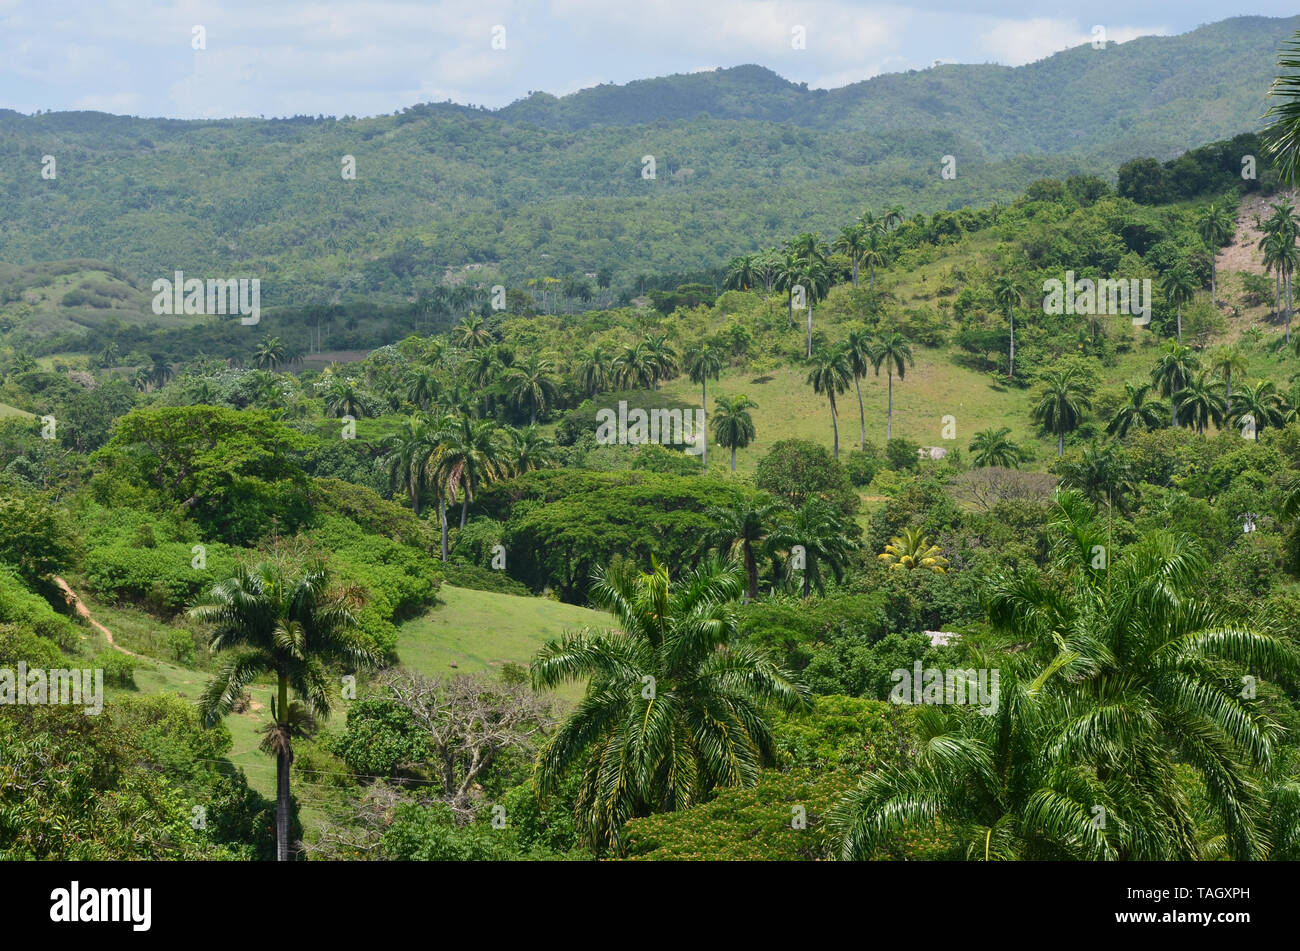 Fields and forested slopes in Guisa municipality (Granma province, Cuba), in the vicinity of Pico de la Bayamesa national park, southern Cuba Stock Photo